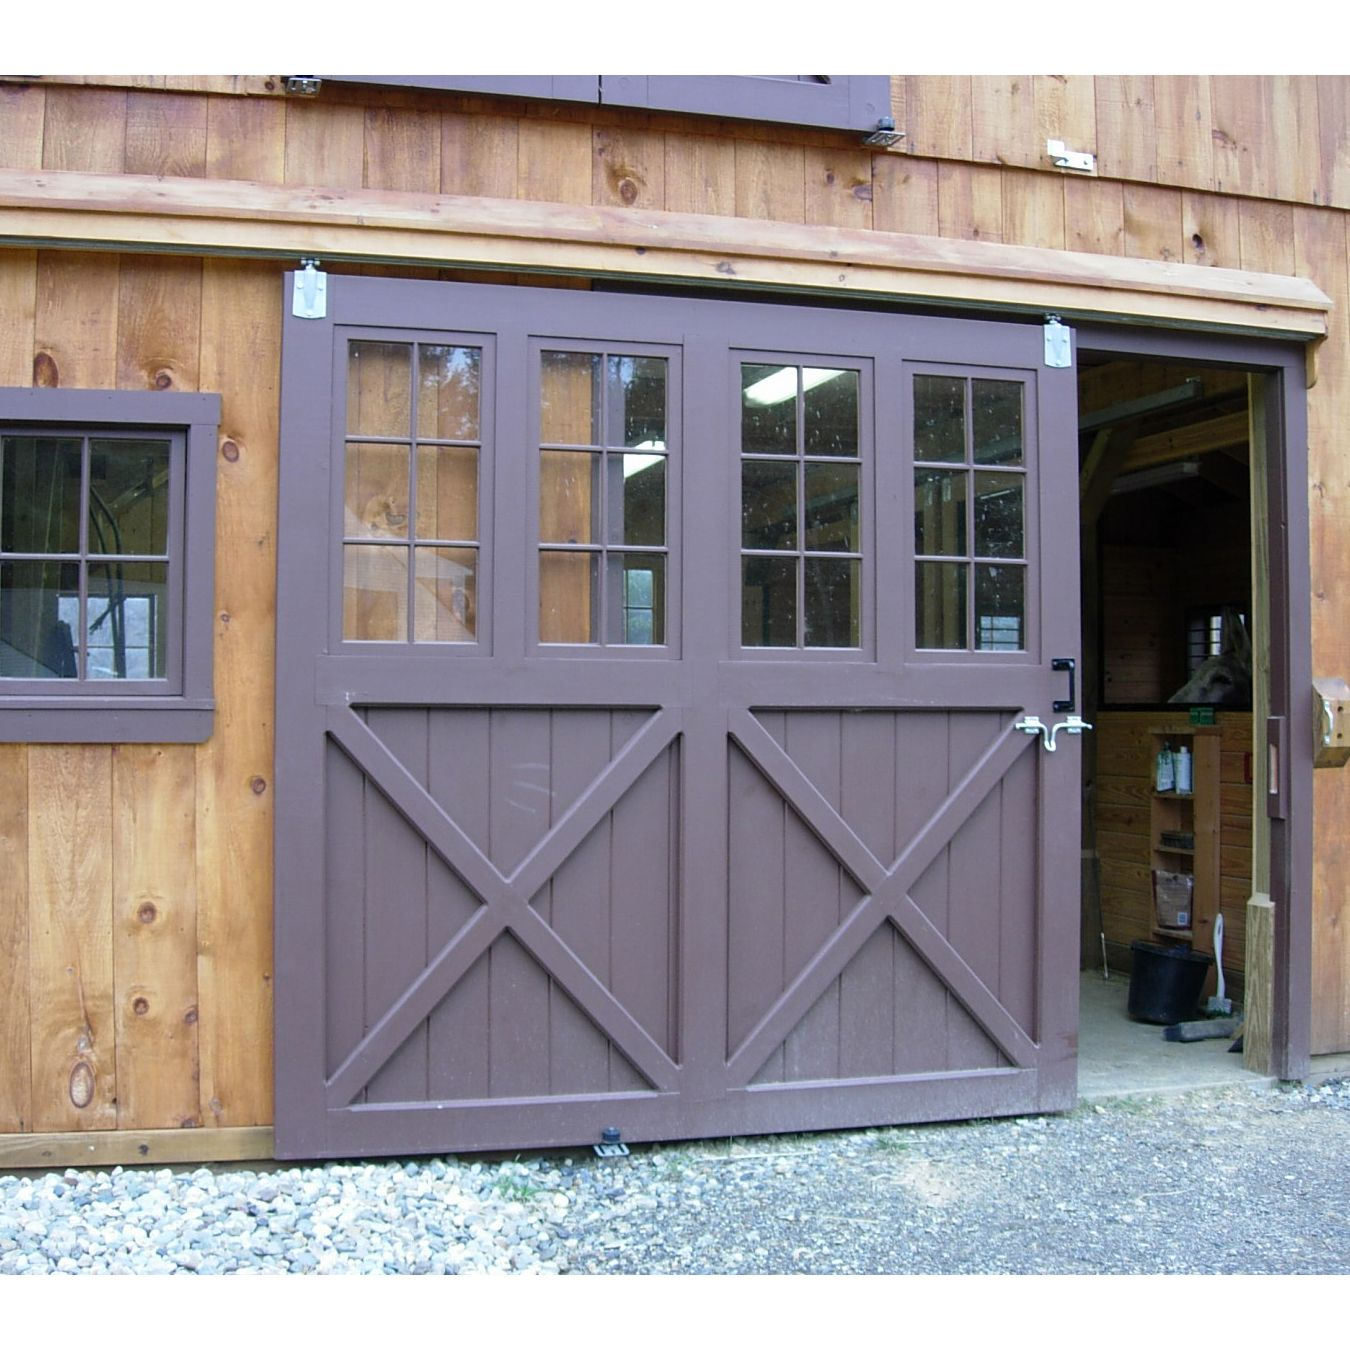 Sliding barn doorn with glass barn depot barn for Exterior barn doors for house